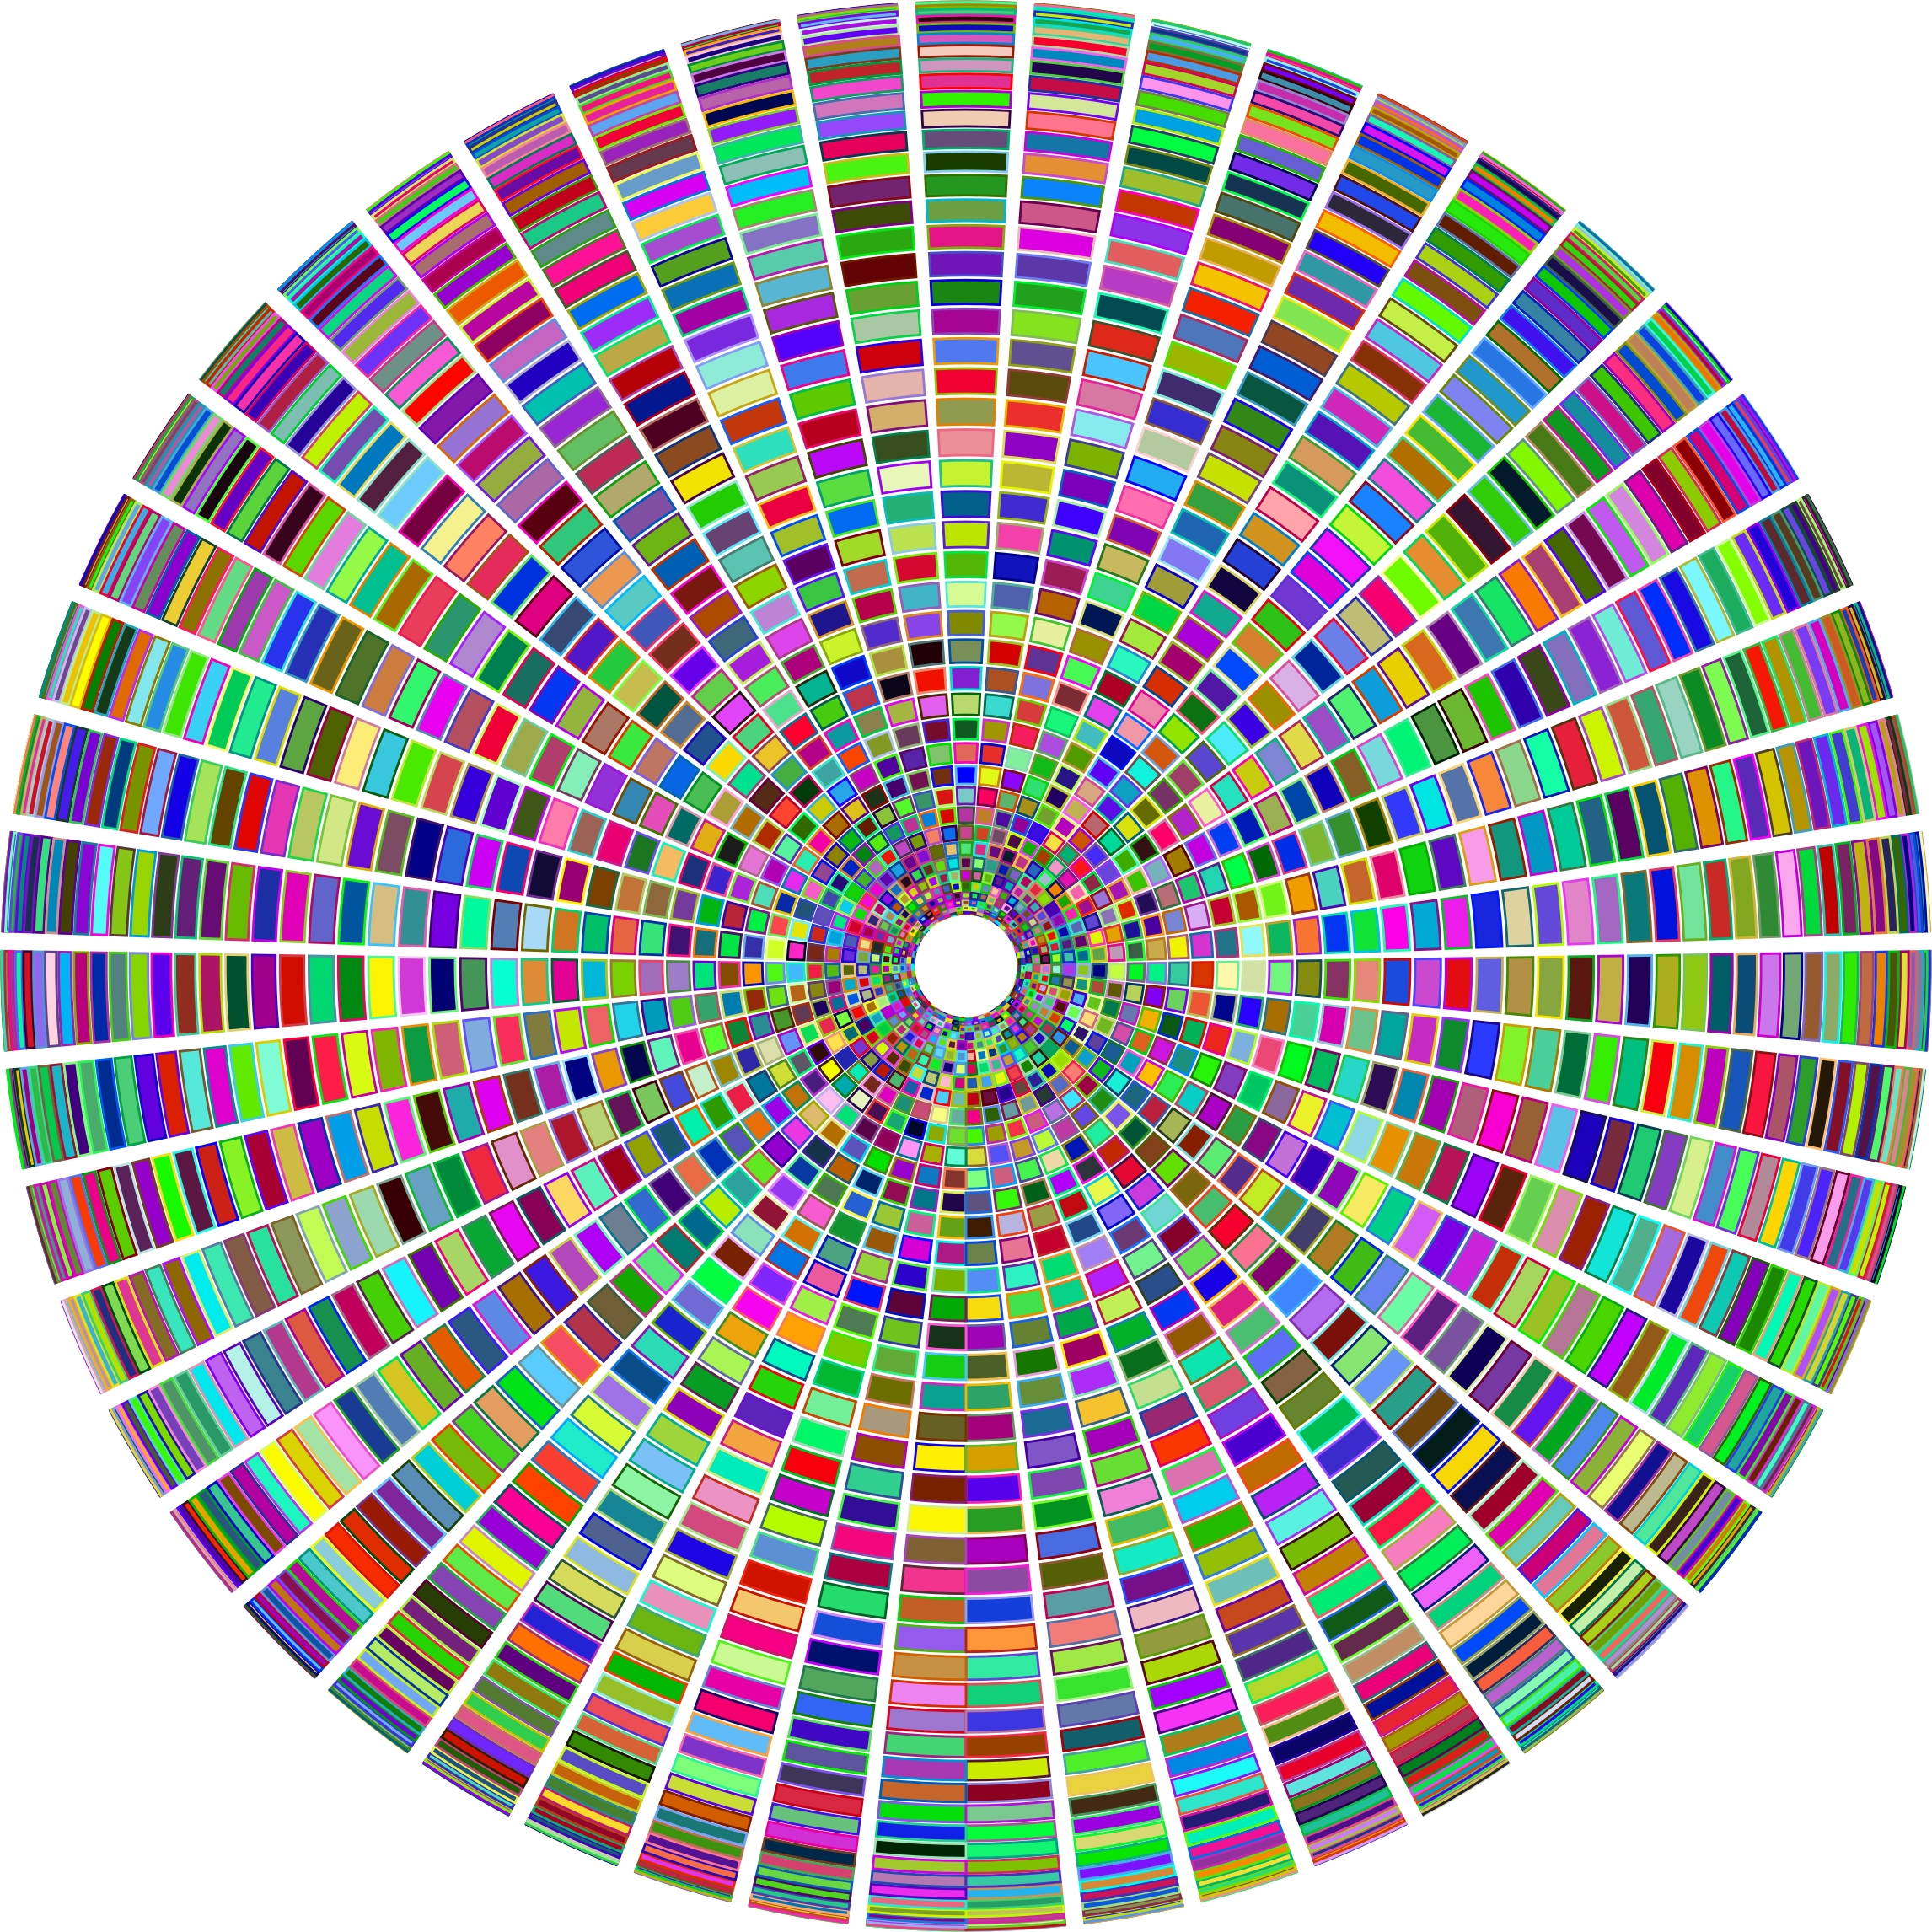 Prismatic Segmented Circle 3 by GDJ